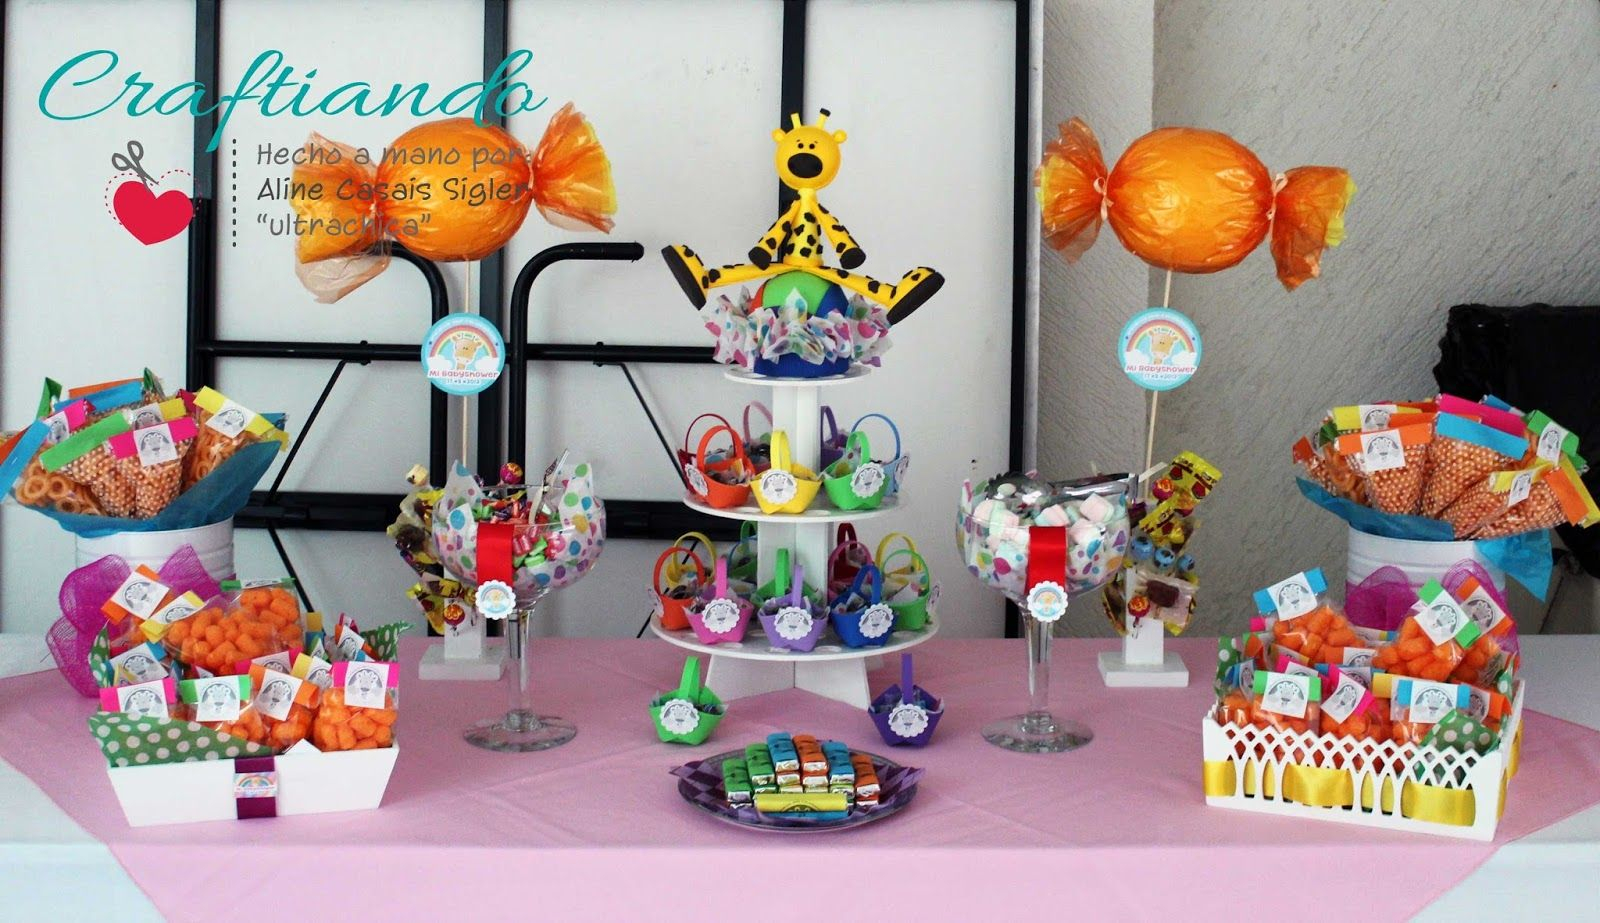 Fancy Mesa De Dulces Para Baby Shower Vintage - Buscar Con Google with Mesa De Dulces Para Baby Shower